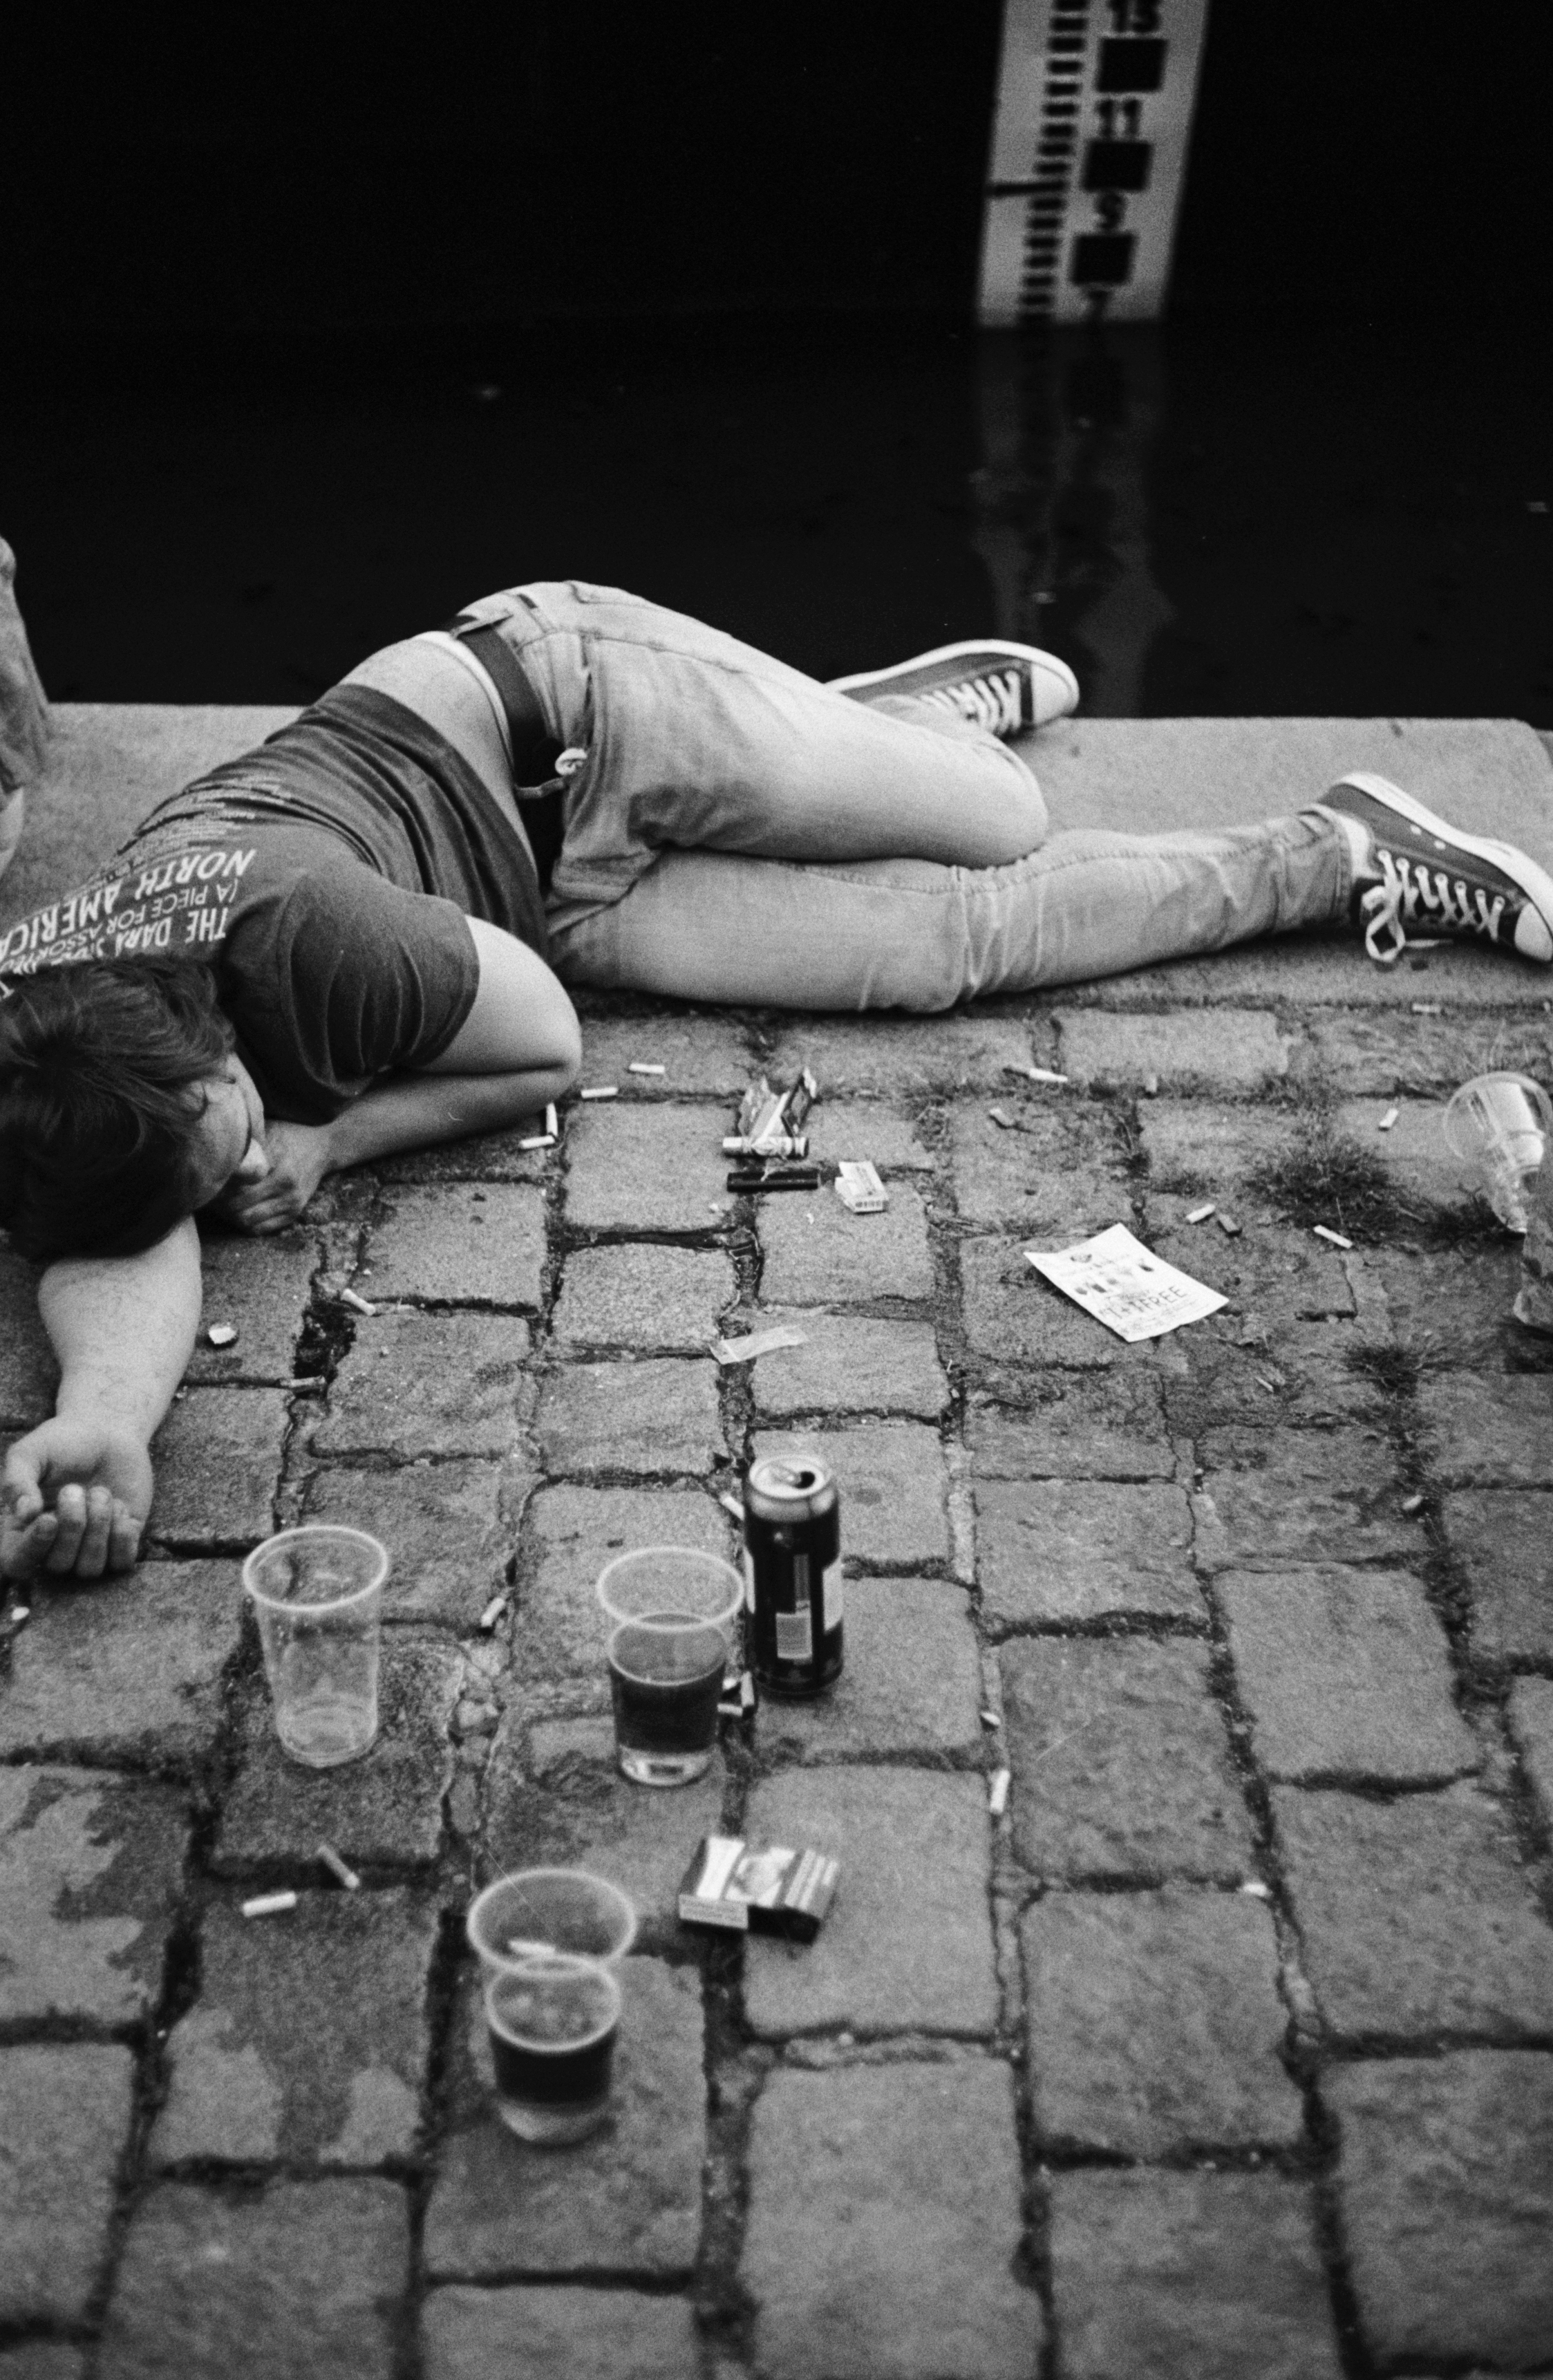 Aftermath of stag night, Prague